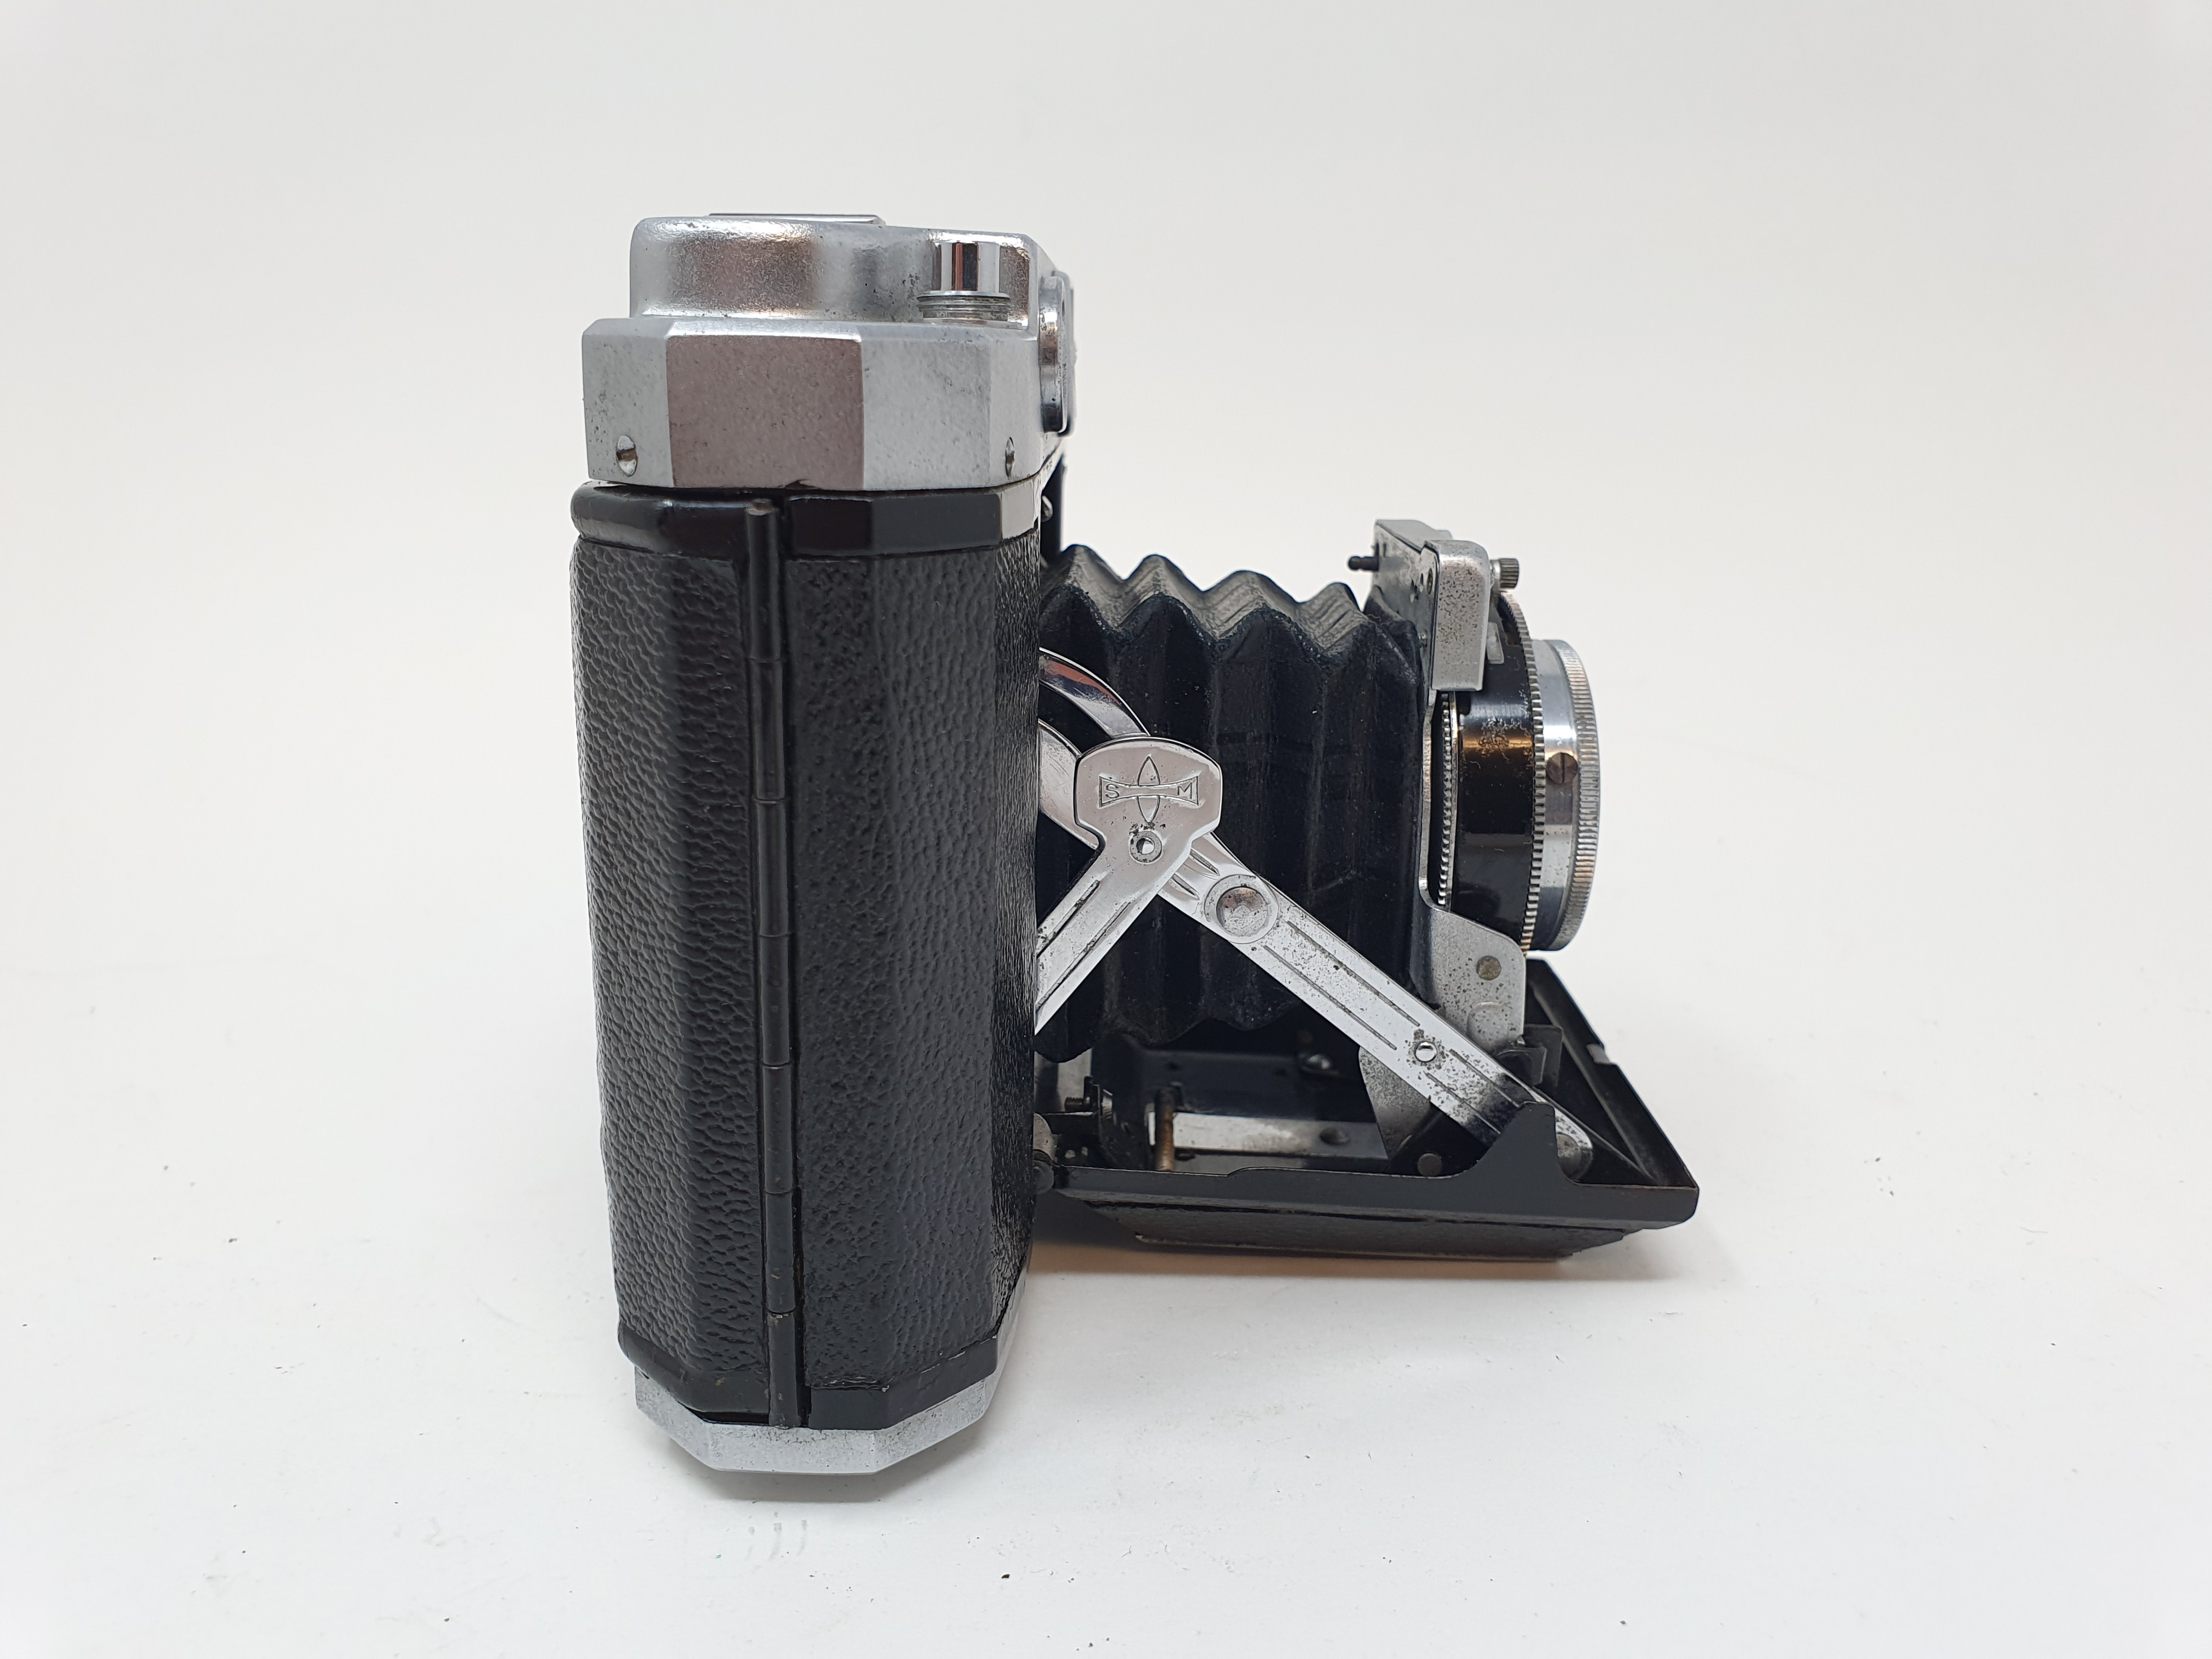 A Mamiya-6 folding camera Provenance: Part of a vast single owner collection of cameras, lenses - Image 3 of 4